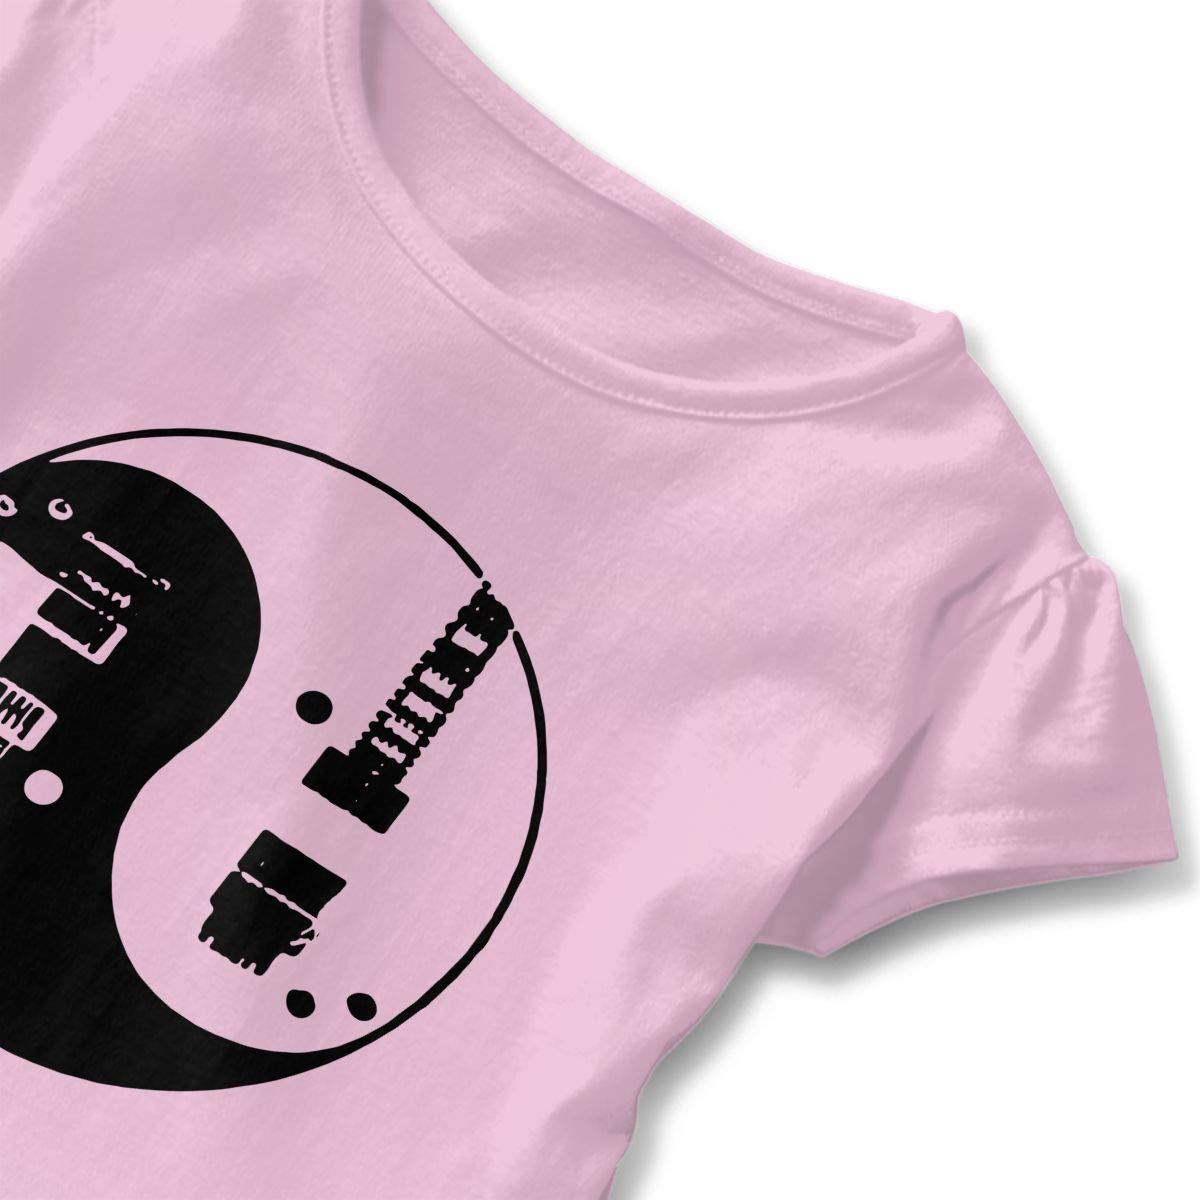 Guitars Yin Yang Kids Girls Short Sleeve Ruffles Shirt Tee Jersey for 2-6 Toddlers